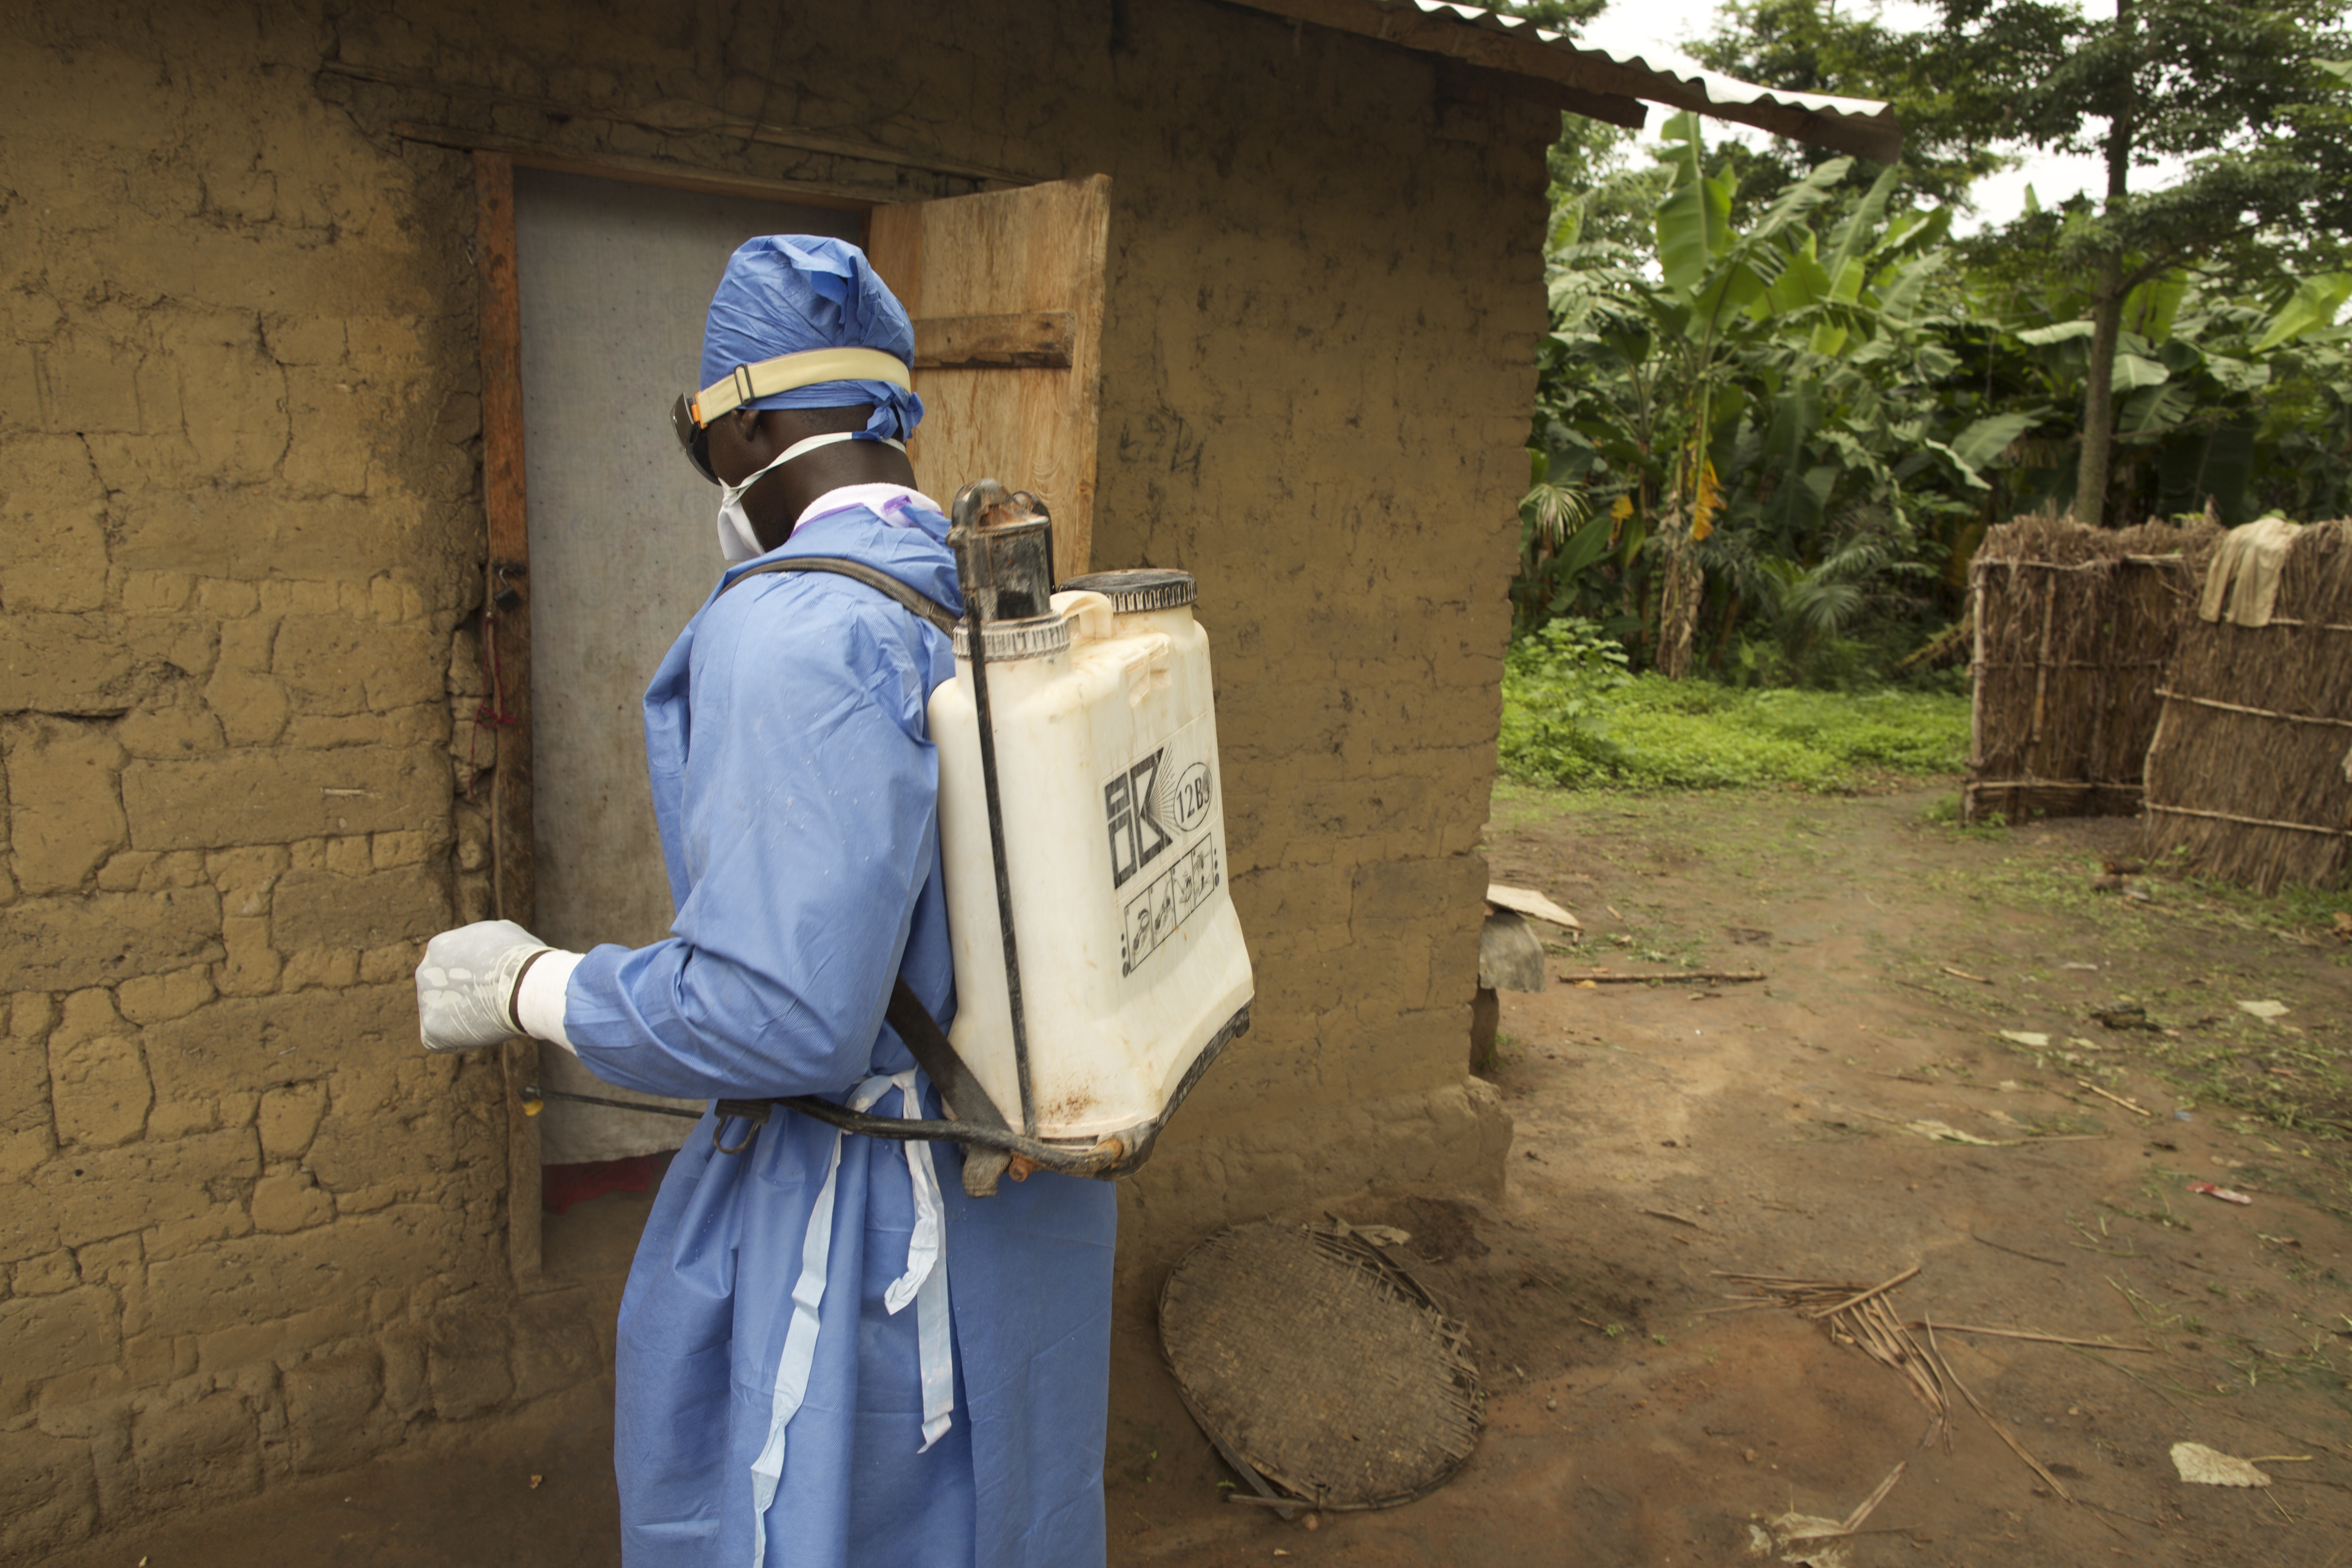 A home in the village of Sikhourou is disinfected. ©UNICEF Guinea/2015/Tim Irwin